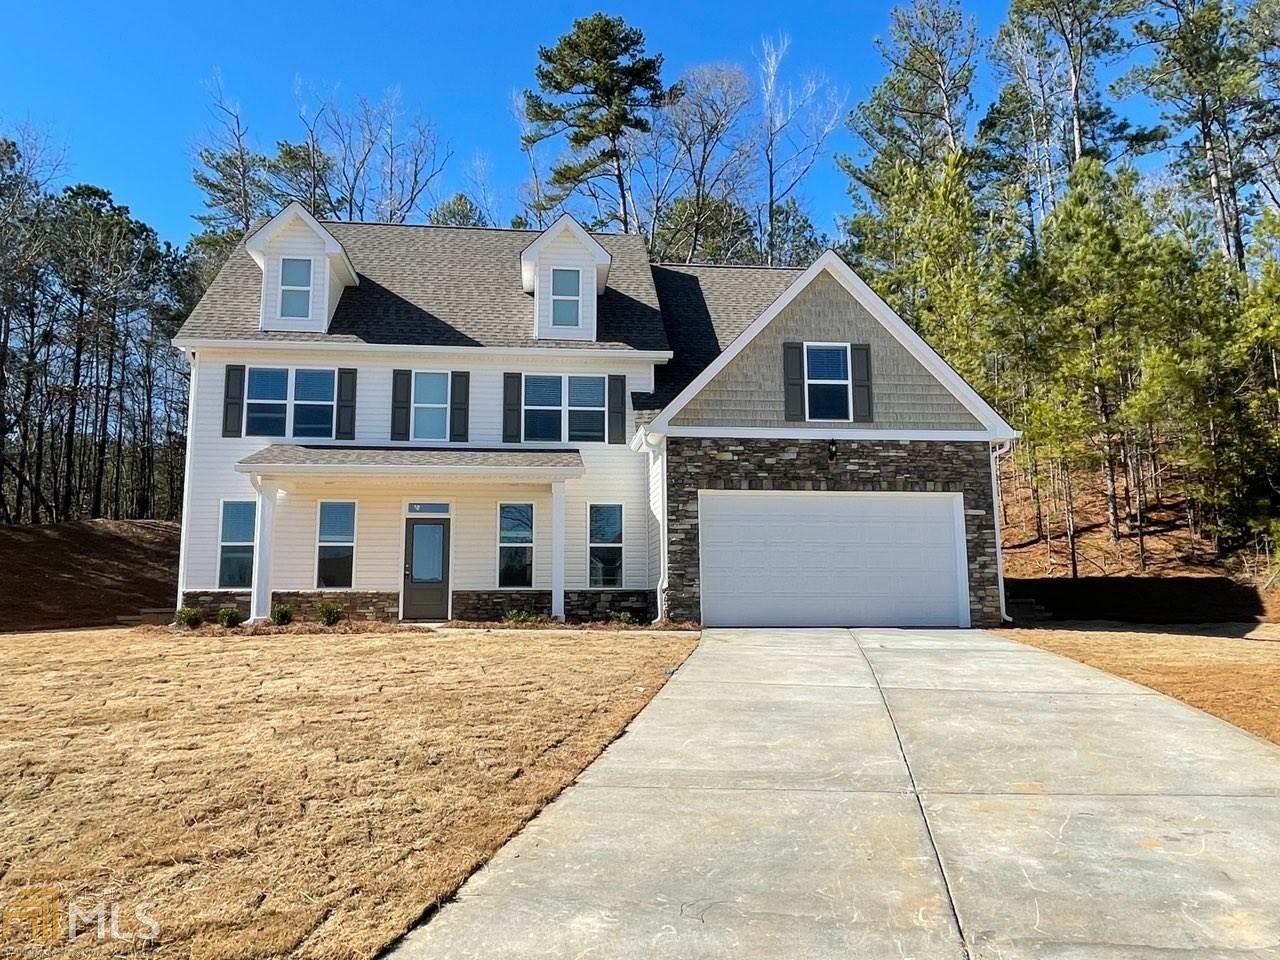 106 Boston Ct, LaGrange, GA 30241 - #: 8838325